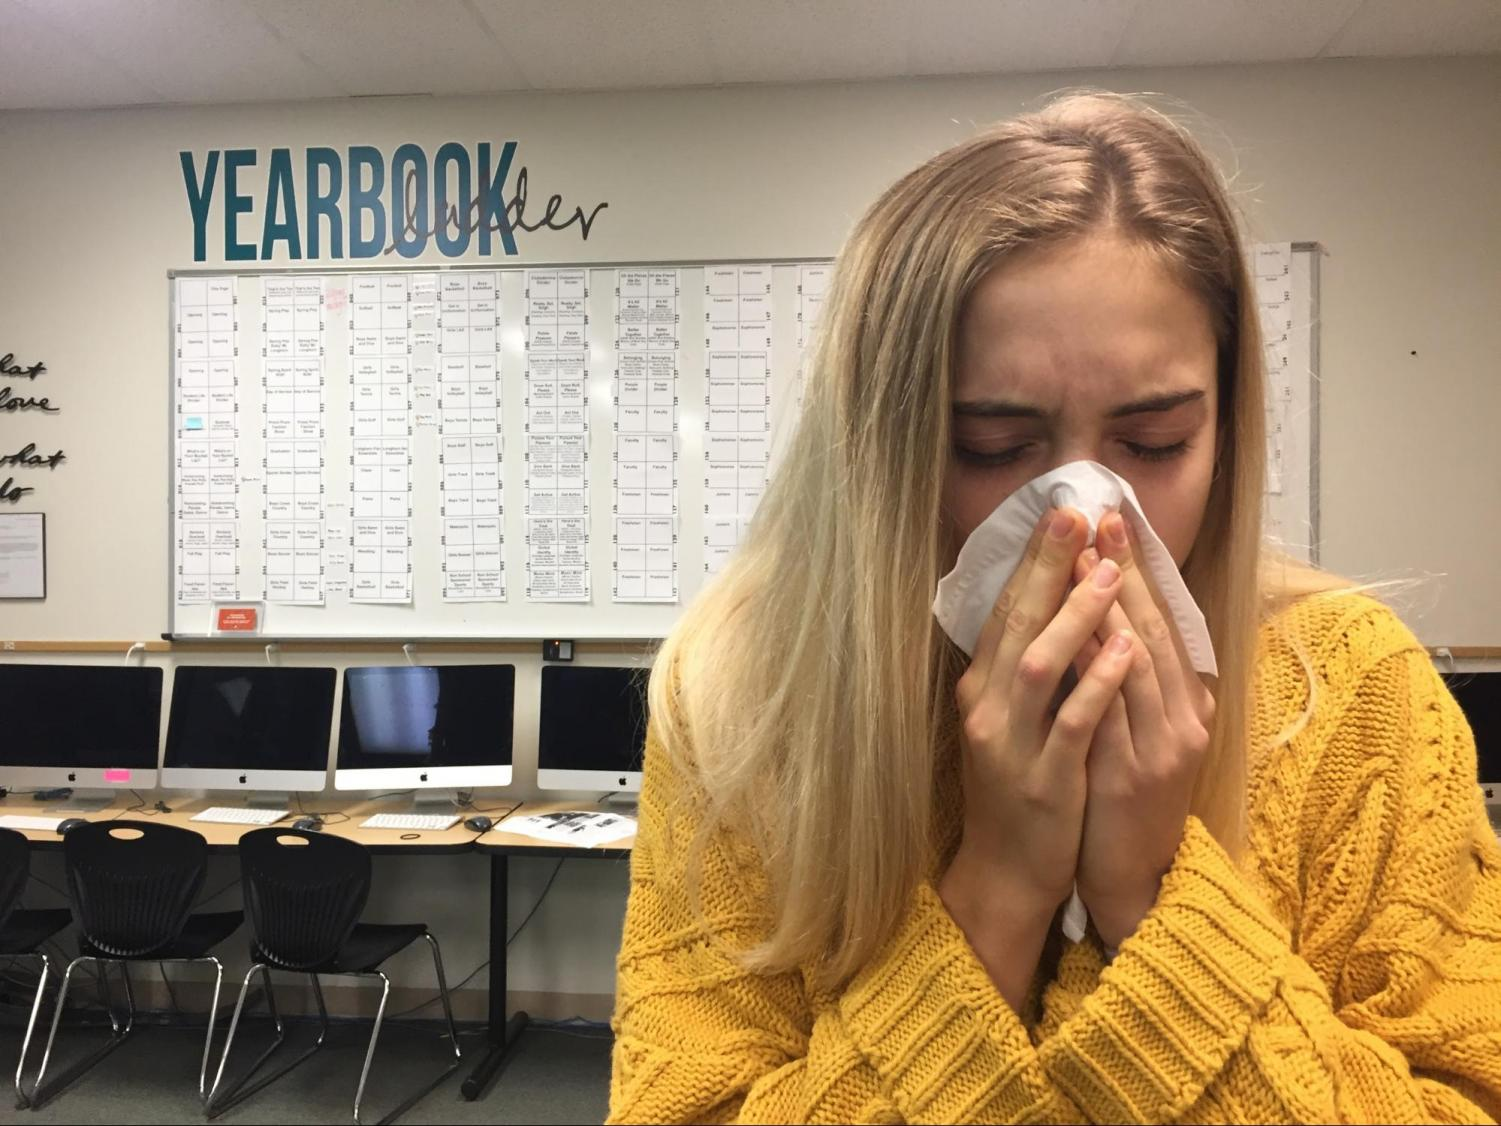 """Clearing her nasal passages, sickly senior Susie Seidel expels mucus in hopes of relieving her symptoms. Seidel is currently suffering from the ongoing plague, suspected to be Senioritis, impacting the senior class. """"I had a quiz this morning so I came to school thinking I could muster enough strength to make it through the day,"""" Seidel said. """"After I finished my quiz, I realized I was no match for the deadly disease and quickly left school so I wouldn't infect others. I guess you could say I was caring, I removed myself from school to ensure the safety of others."""